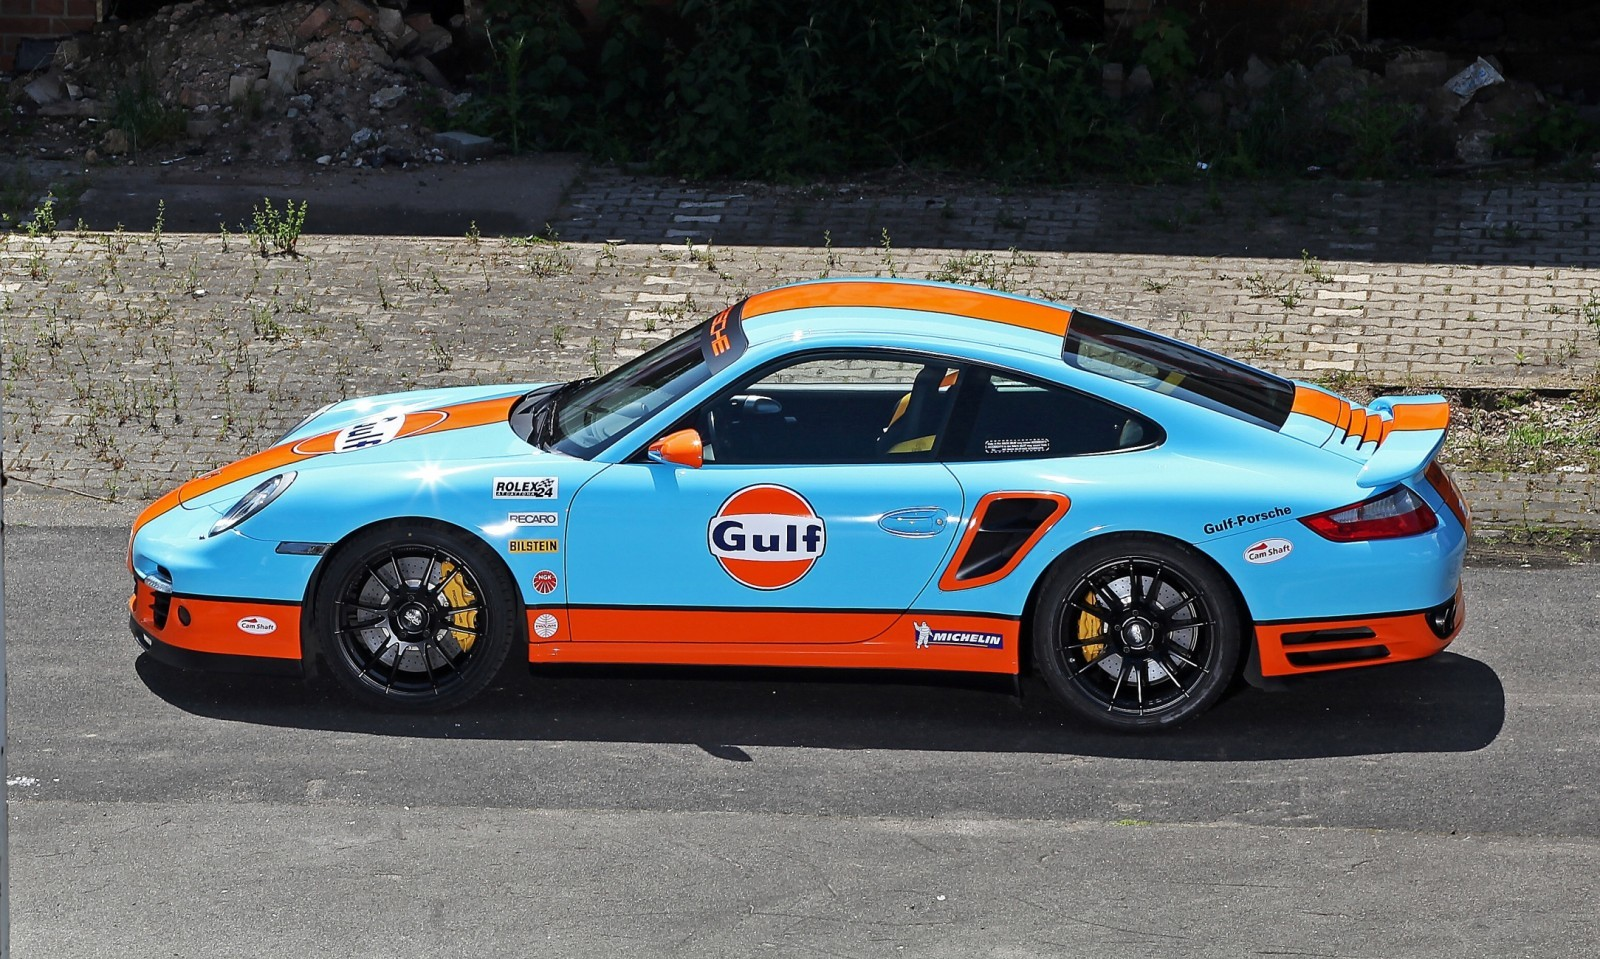 Gulf Racing Livery by CAM SHAFT for the Porsche 911 Turbo 4